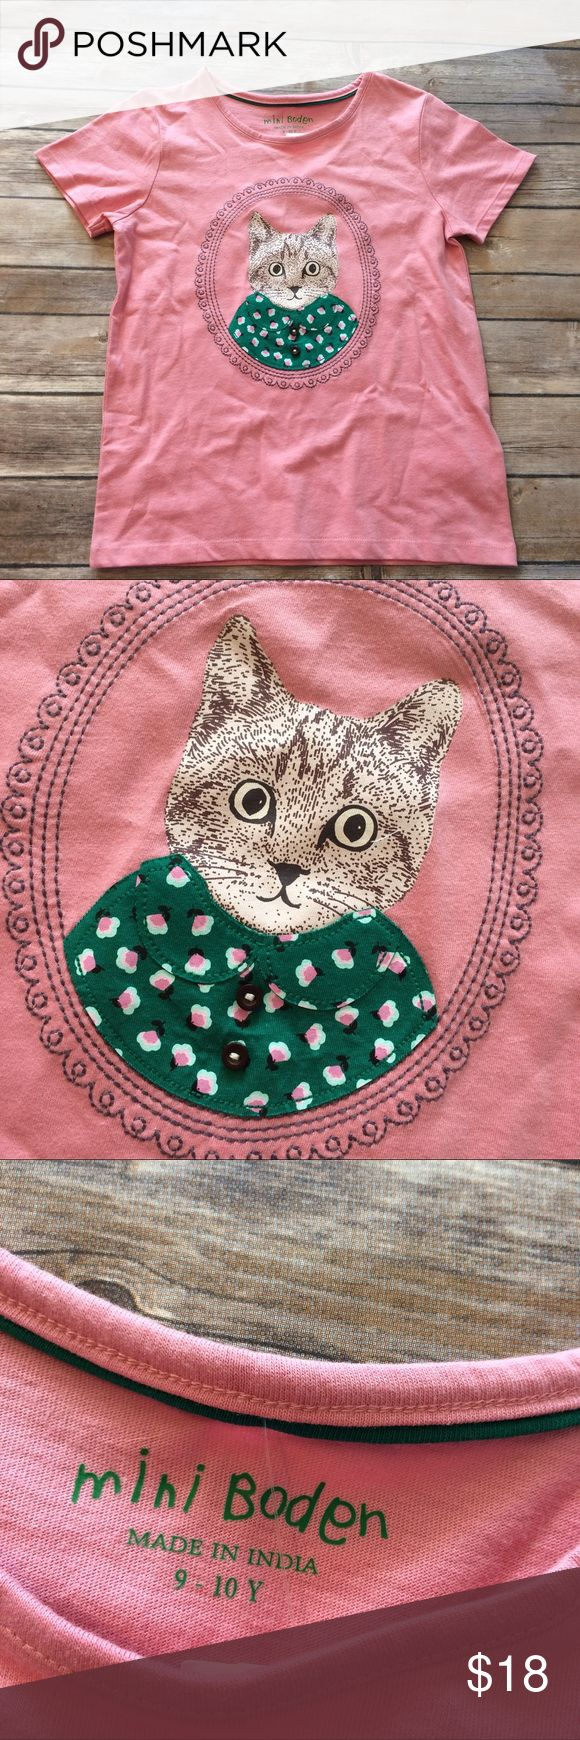 Mini Boden cat portrait tee size 9-10 Dusty pink short sleeve tee with cat portrait. Cat's shirt is appliqué. Size 9-10 years. New with tags! Smoke free dog friendly home. Always a bundle discount in my closet. Mini Boden Shirts & Tops